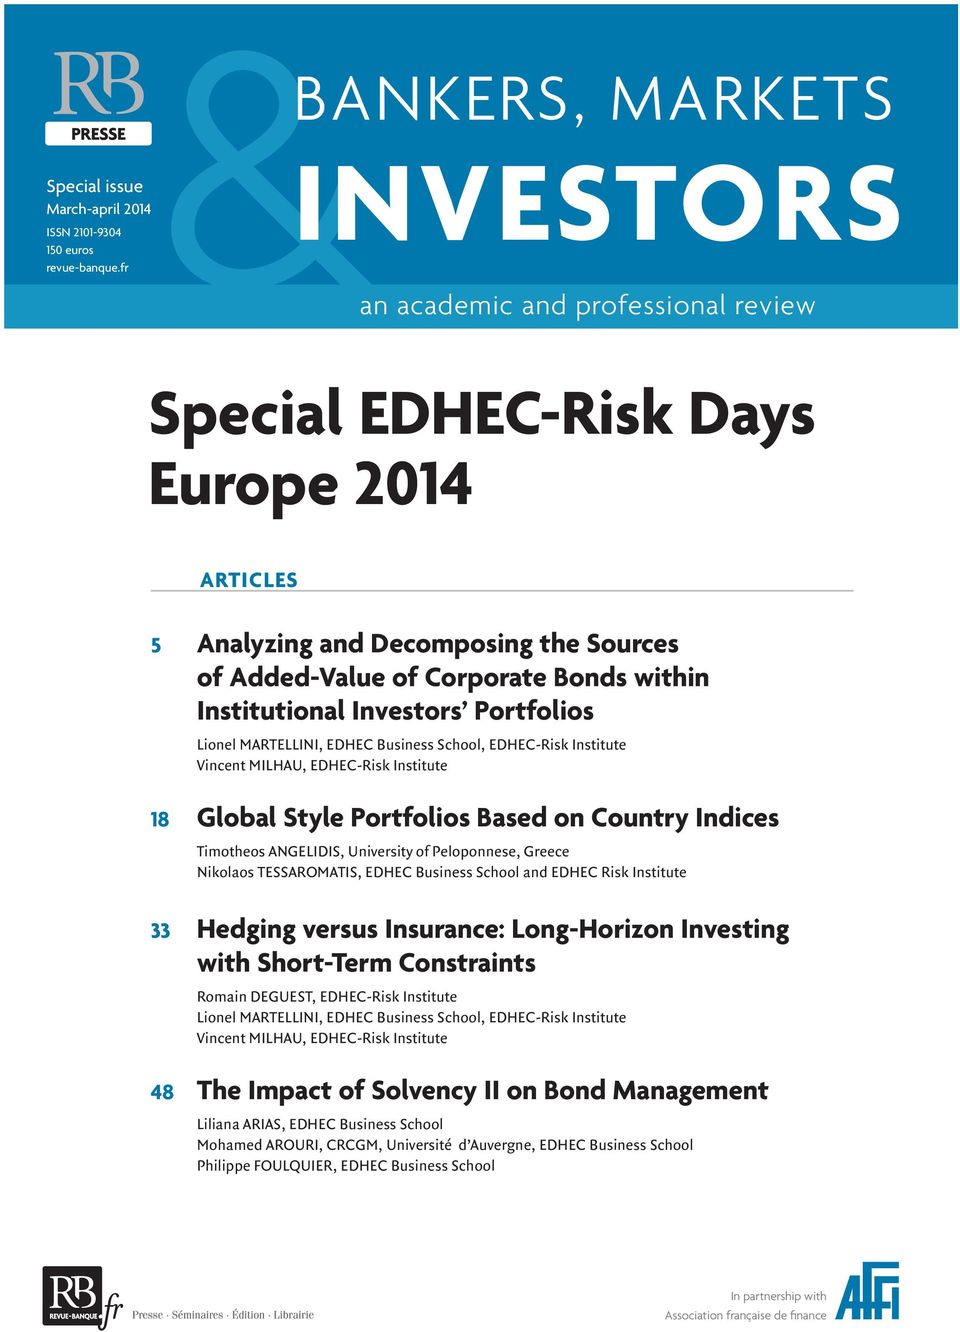 Business School and EDHEC Risk Institute 33 Hedging versus Insurance: Long-Horizon Investing with Short-Term Constraints Romain DEGUEST, EDHEC-Risk Institute 48 The Impact of Solvency II on Bond